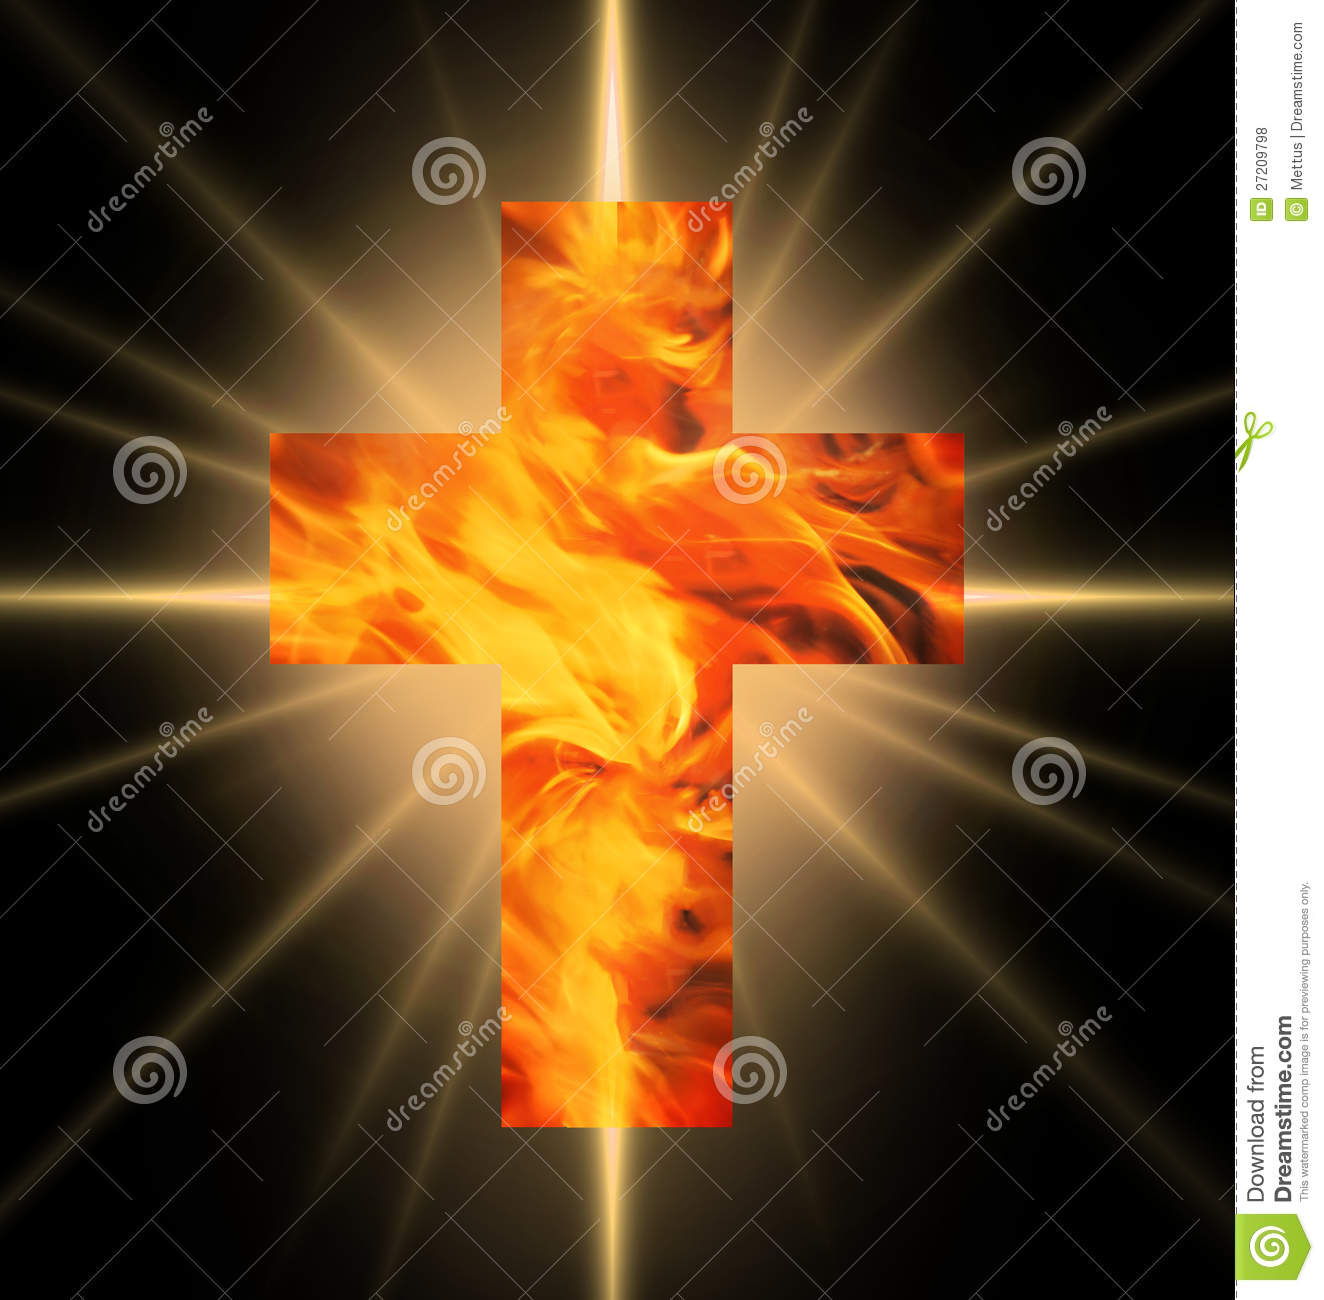 Holy Cross 3d Wallpaper Burning Cross Of Fire Royalty Free Stock Photos Image